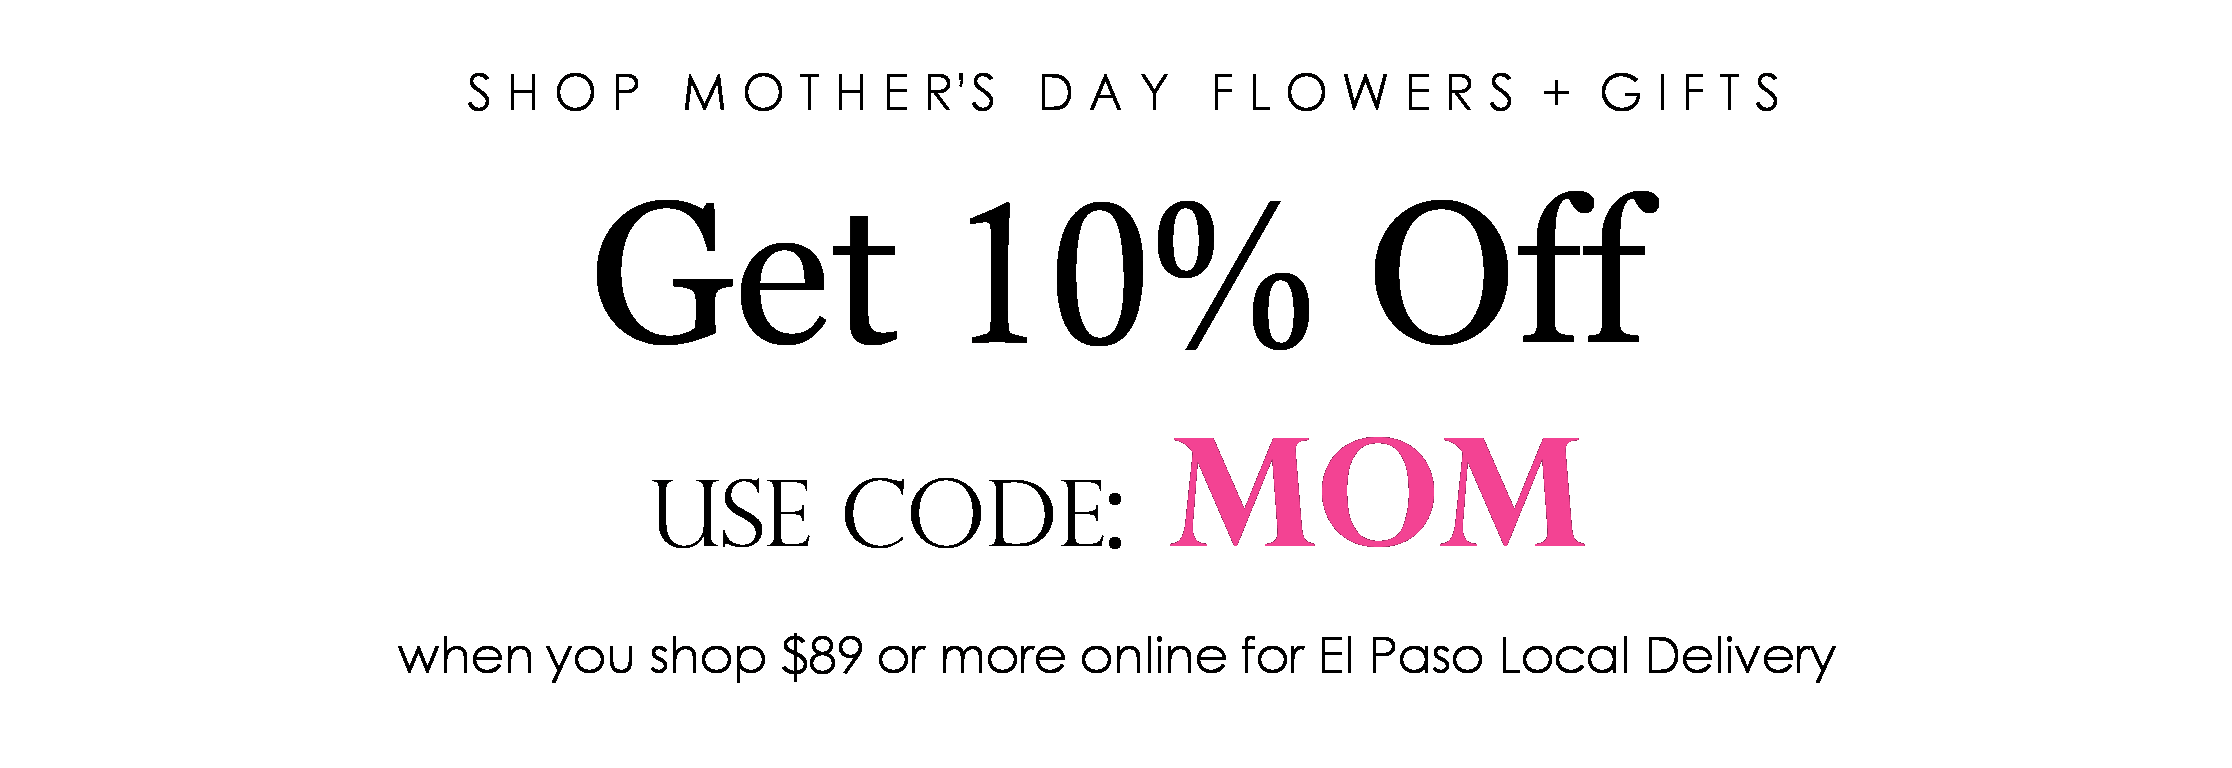 79912-sale-mother-s-day-collection-2019-angie-s-floral-designs-el-paso-florist-flower-delivery.png